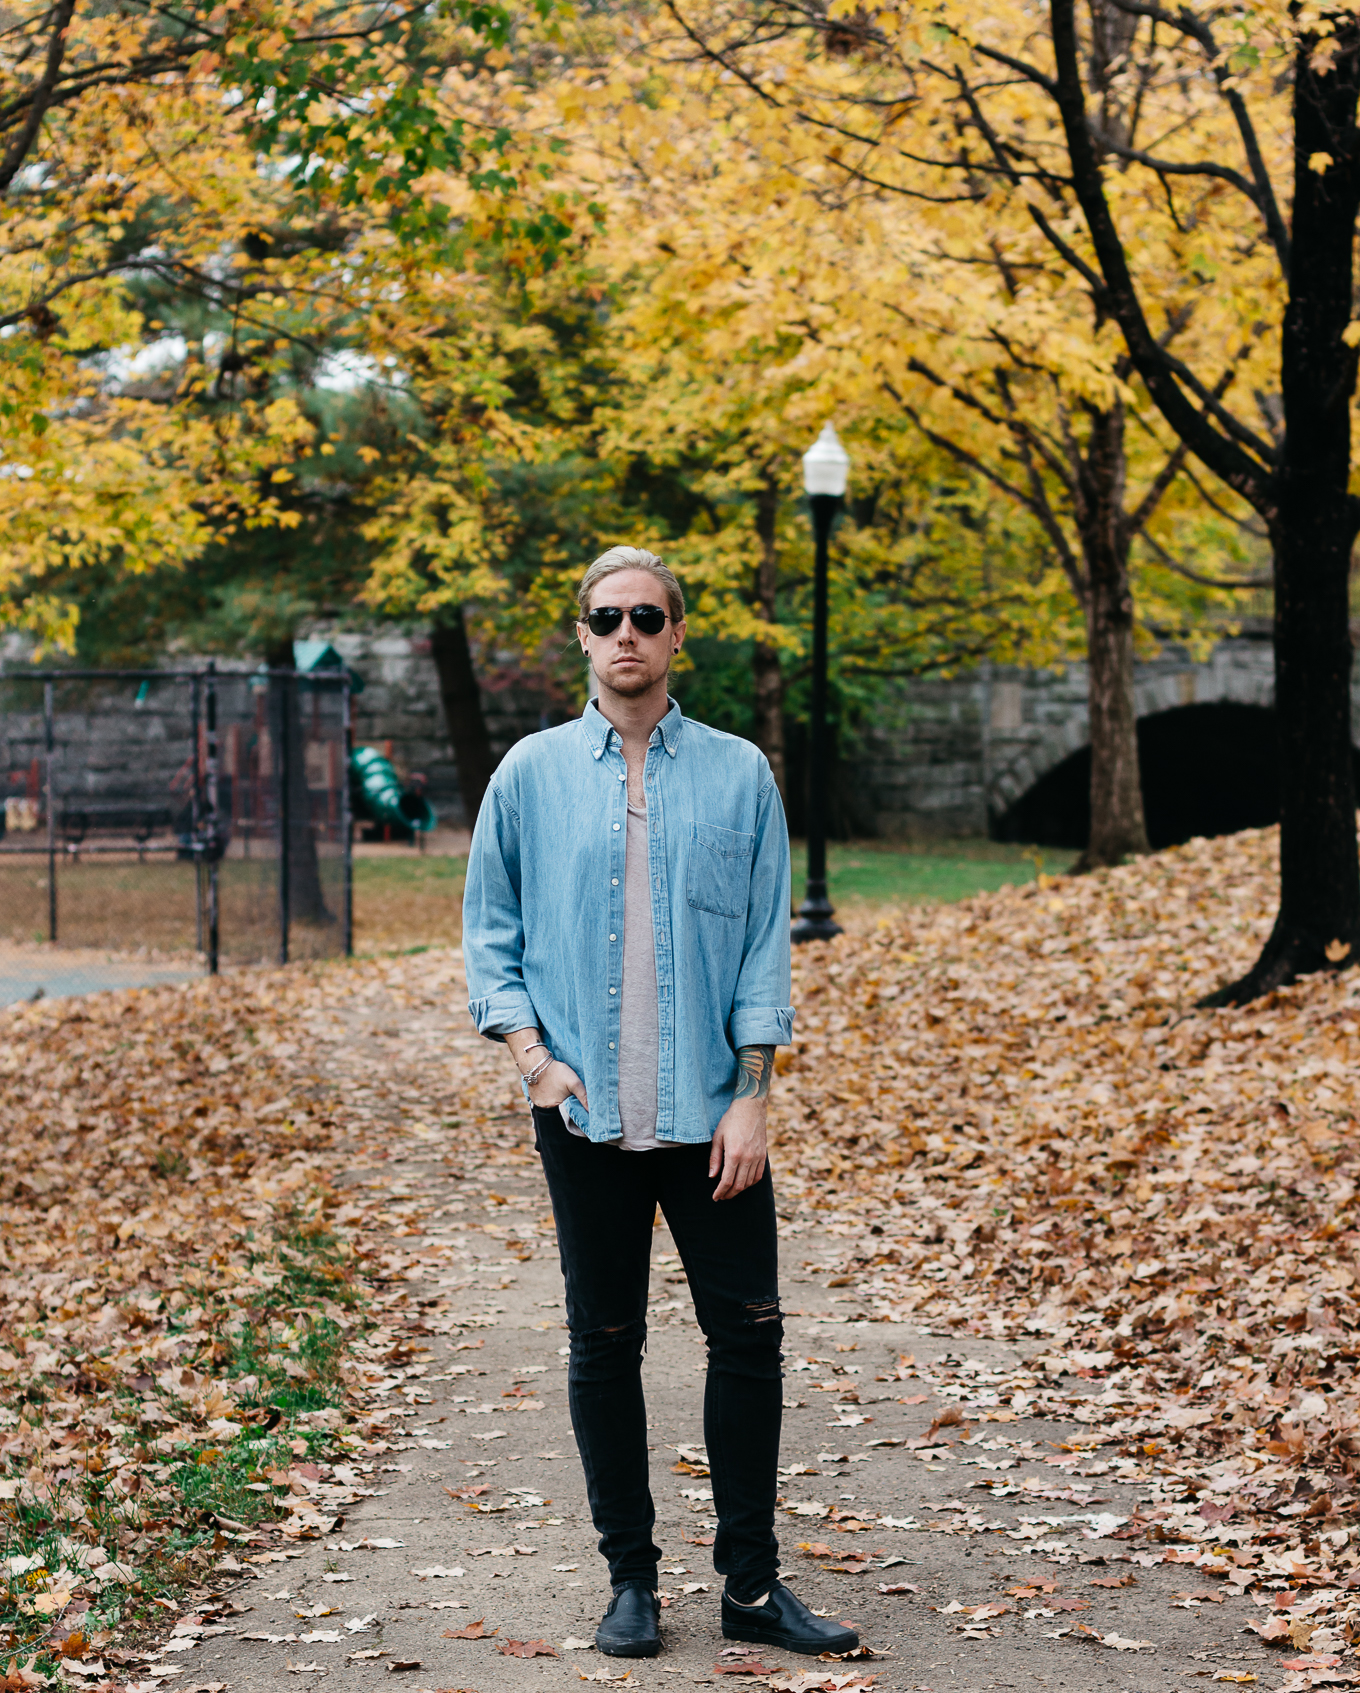 louisville kentucky park, mens fall fashion, vintage j crew denim, vsco film, what to wear in the fall